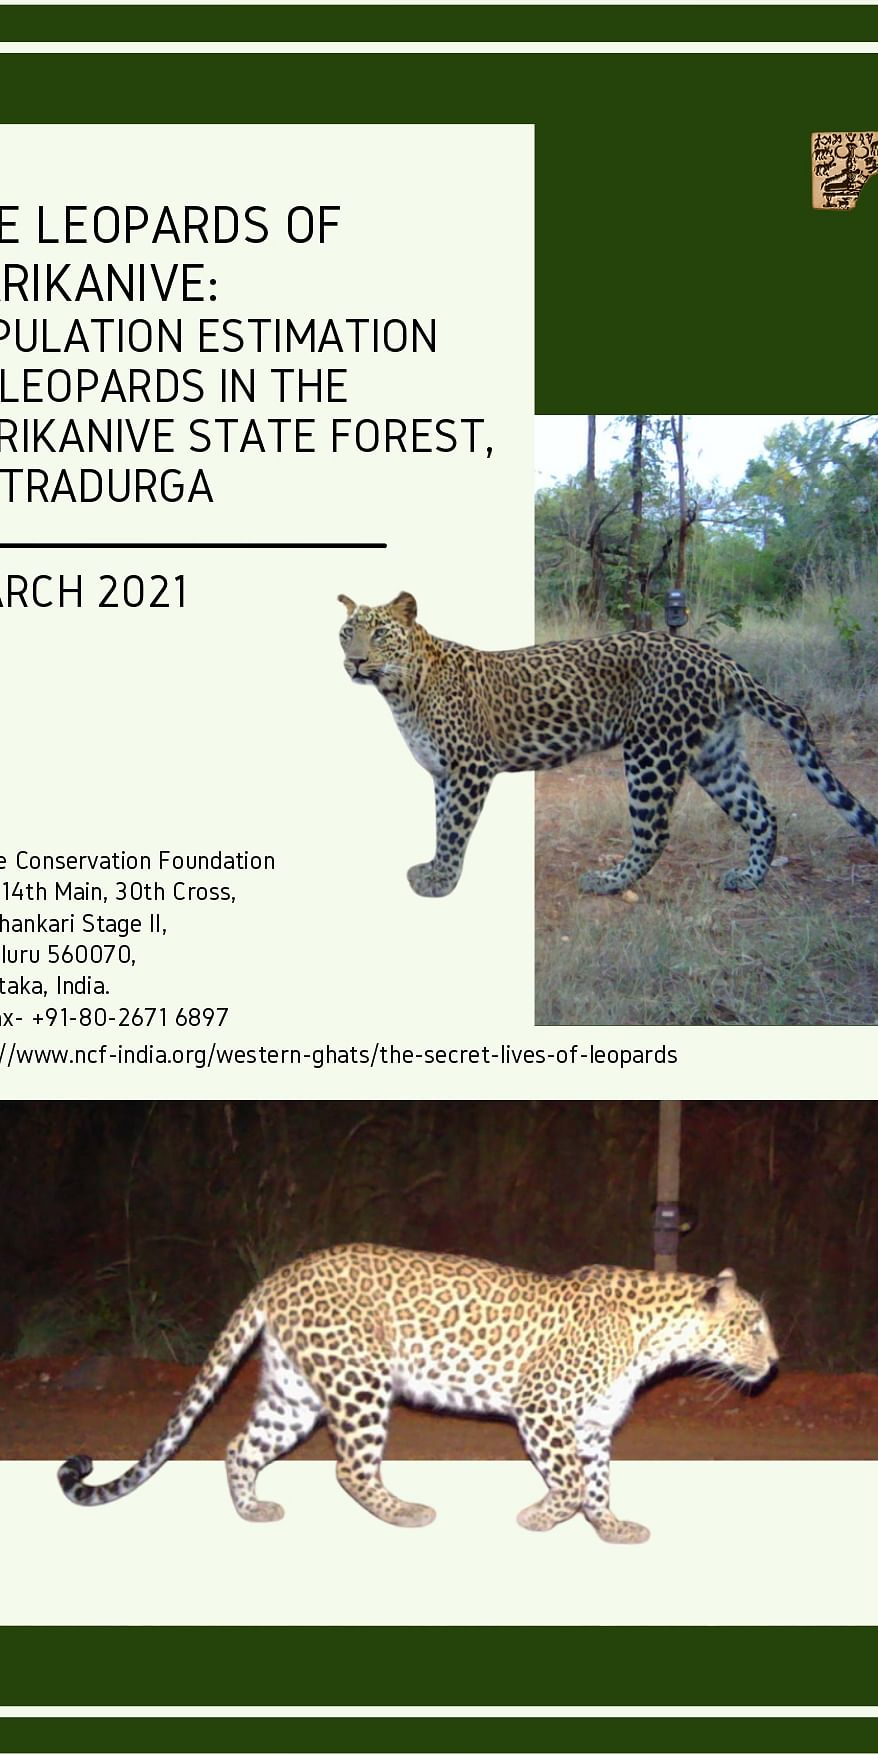 The leopards of Marikanive: Population estimation of leopards in the Marikanive State Forest, Chitradurga